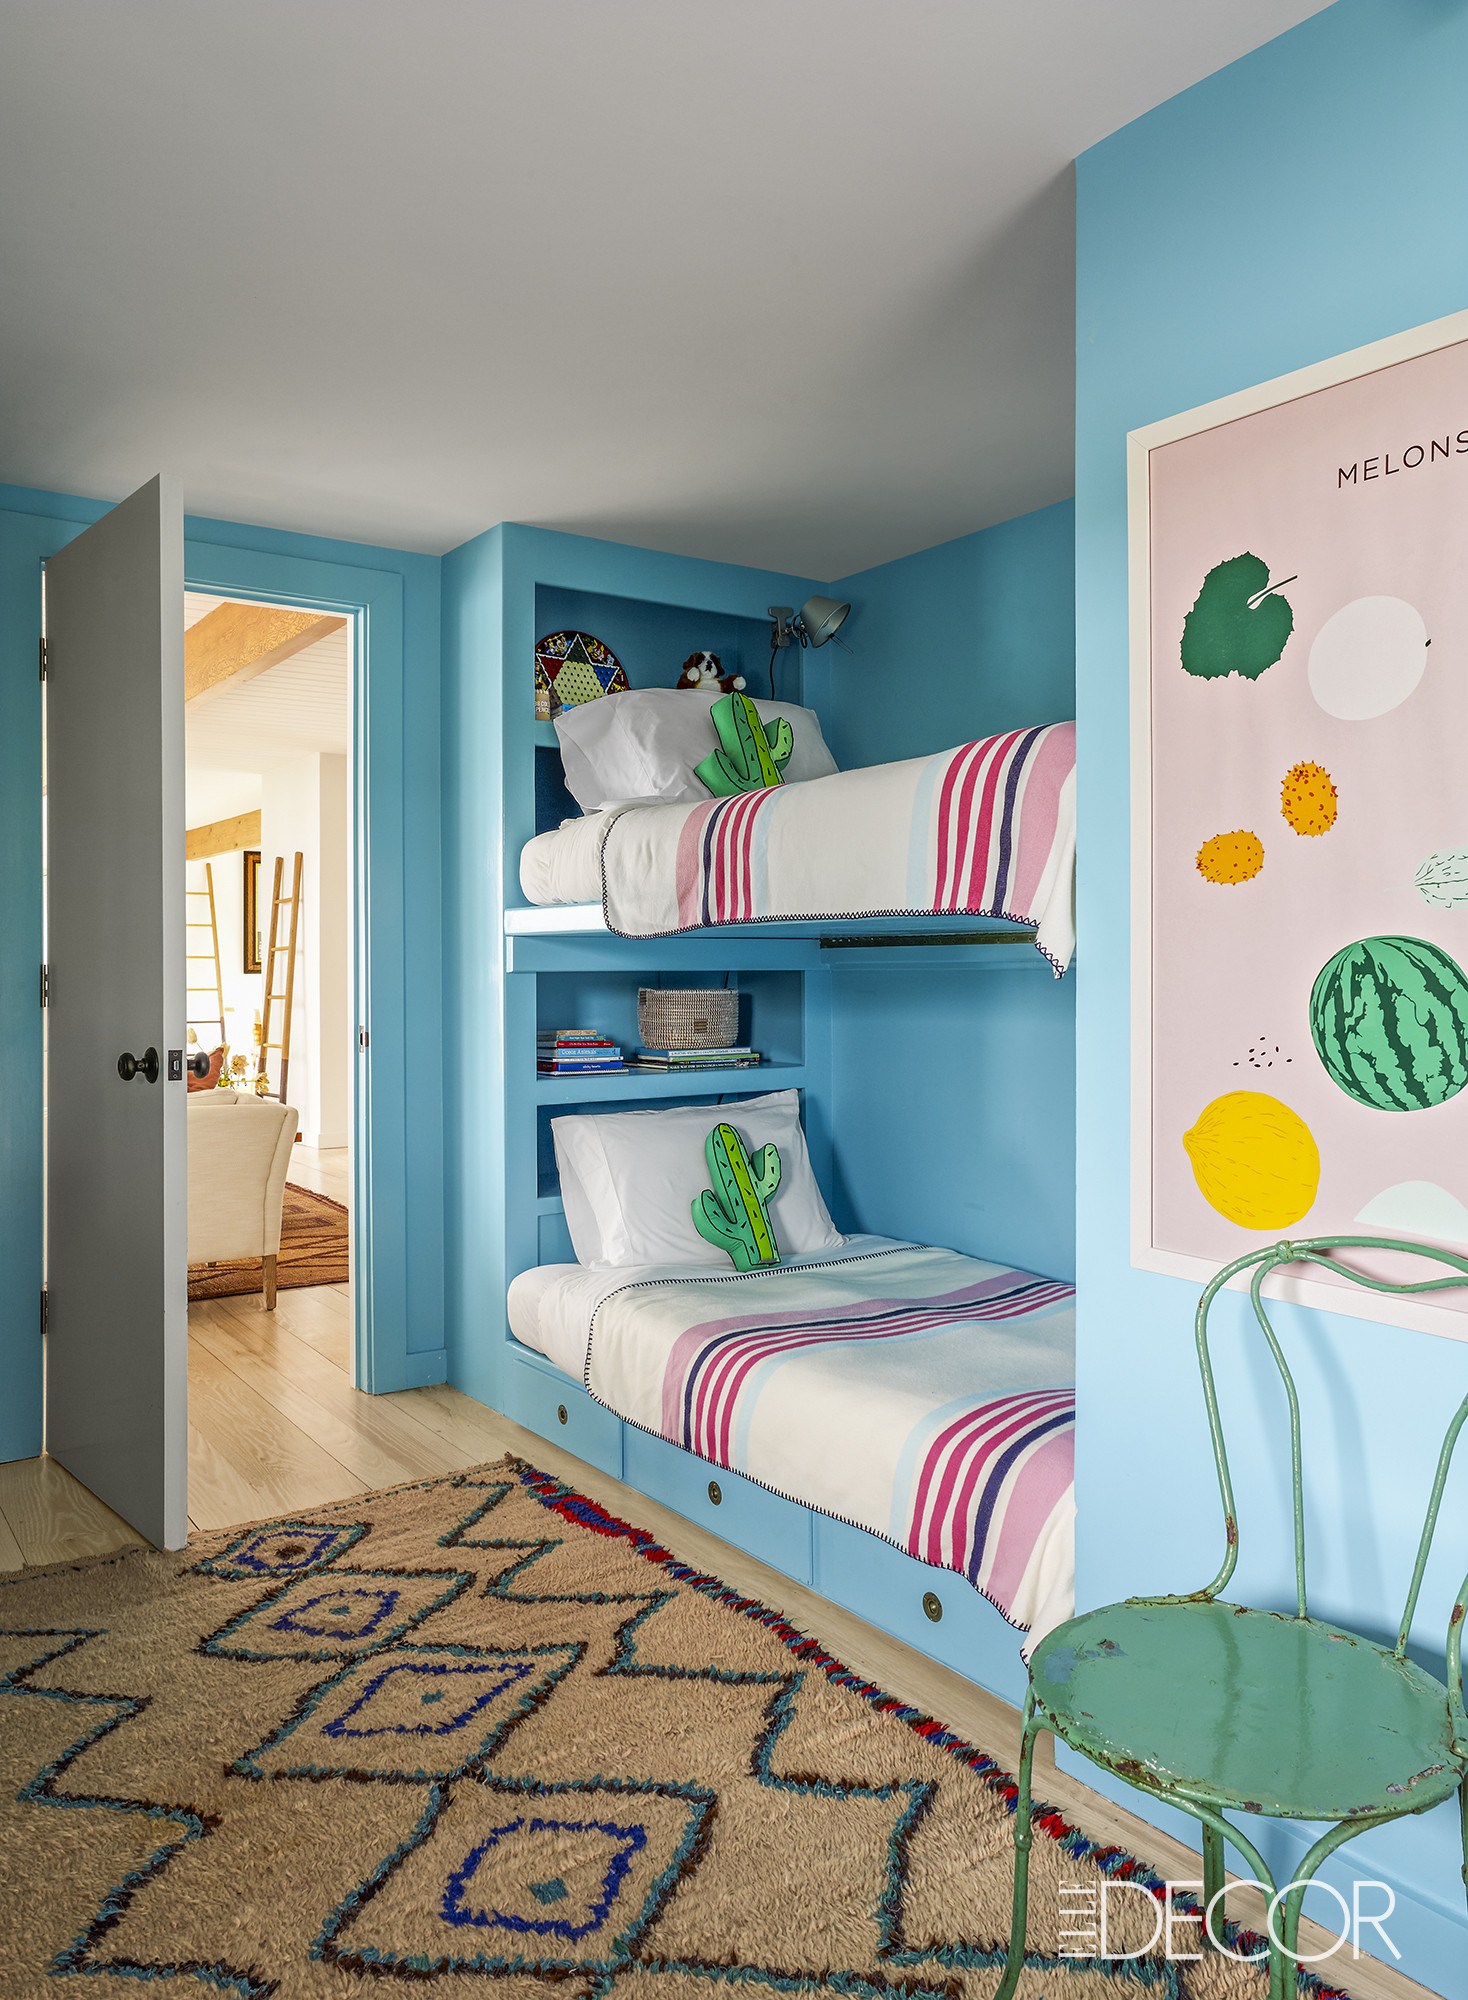 Best ideas about Kids Room Design . Save or Pin Decorate your kids room beautifully – goodworksfurniture Now.